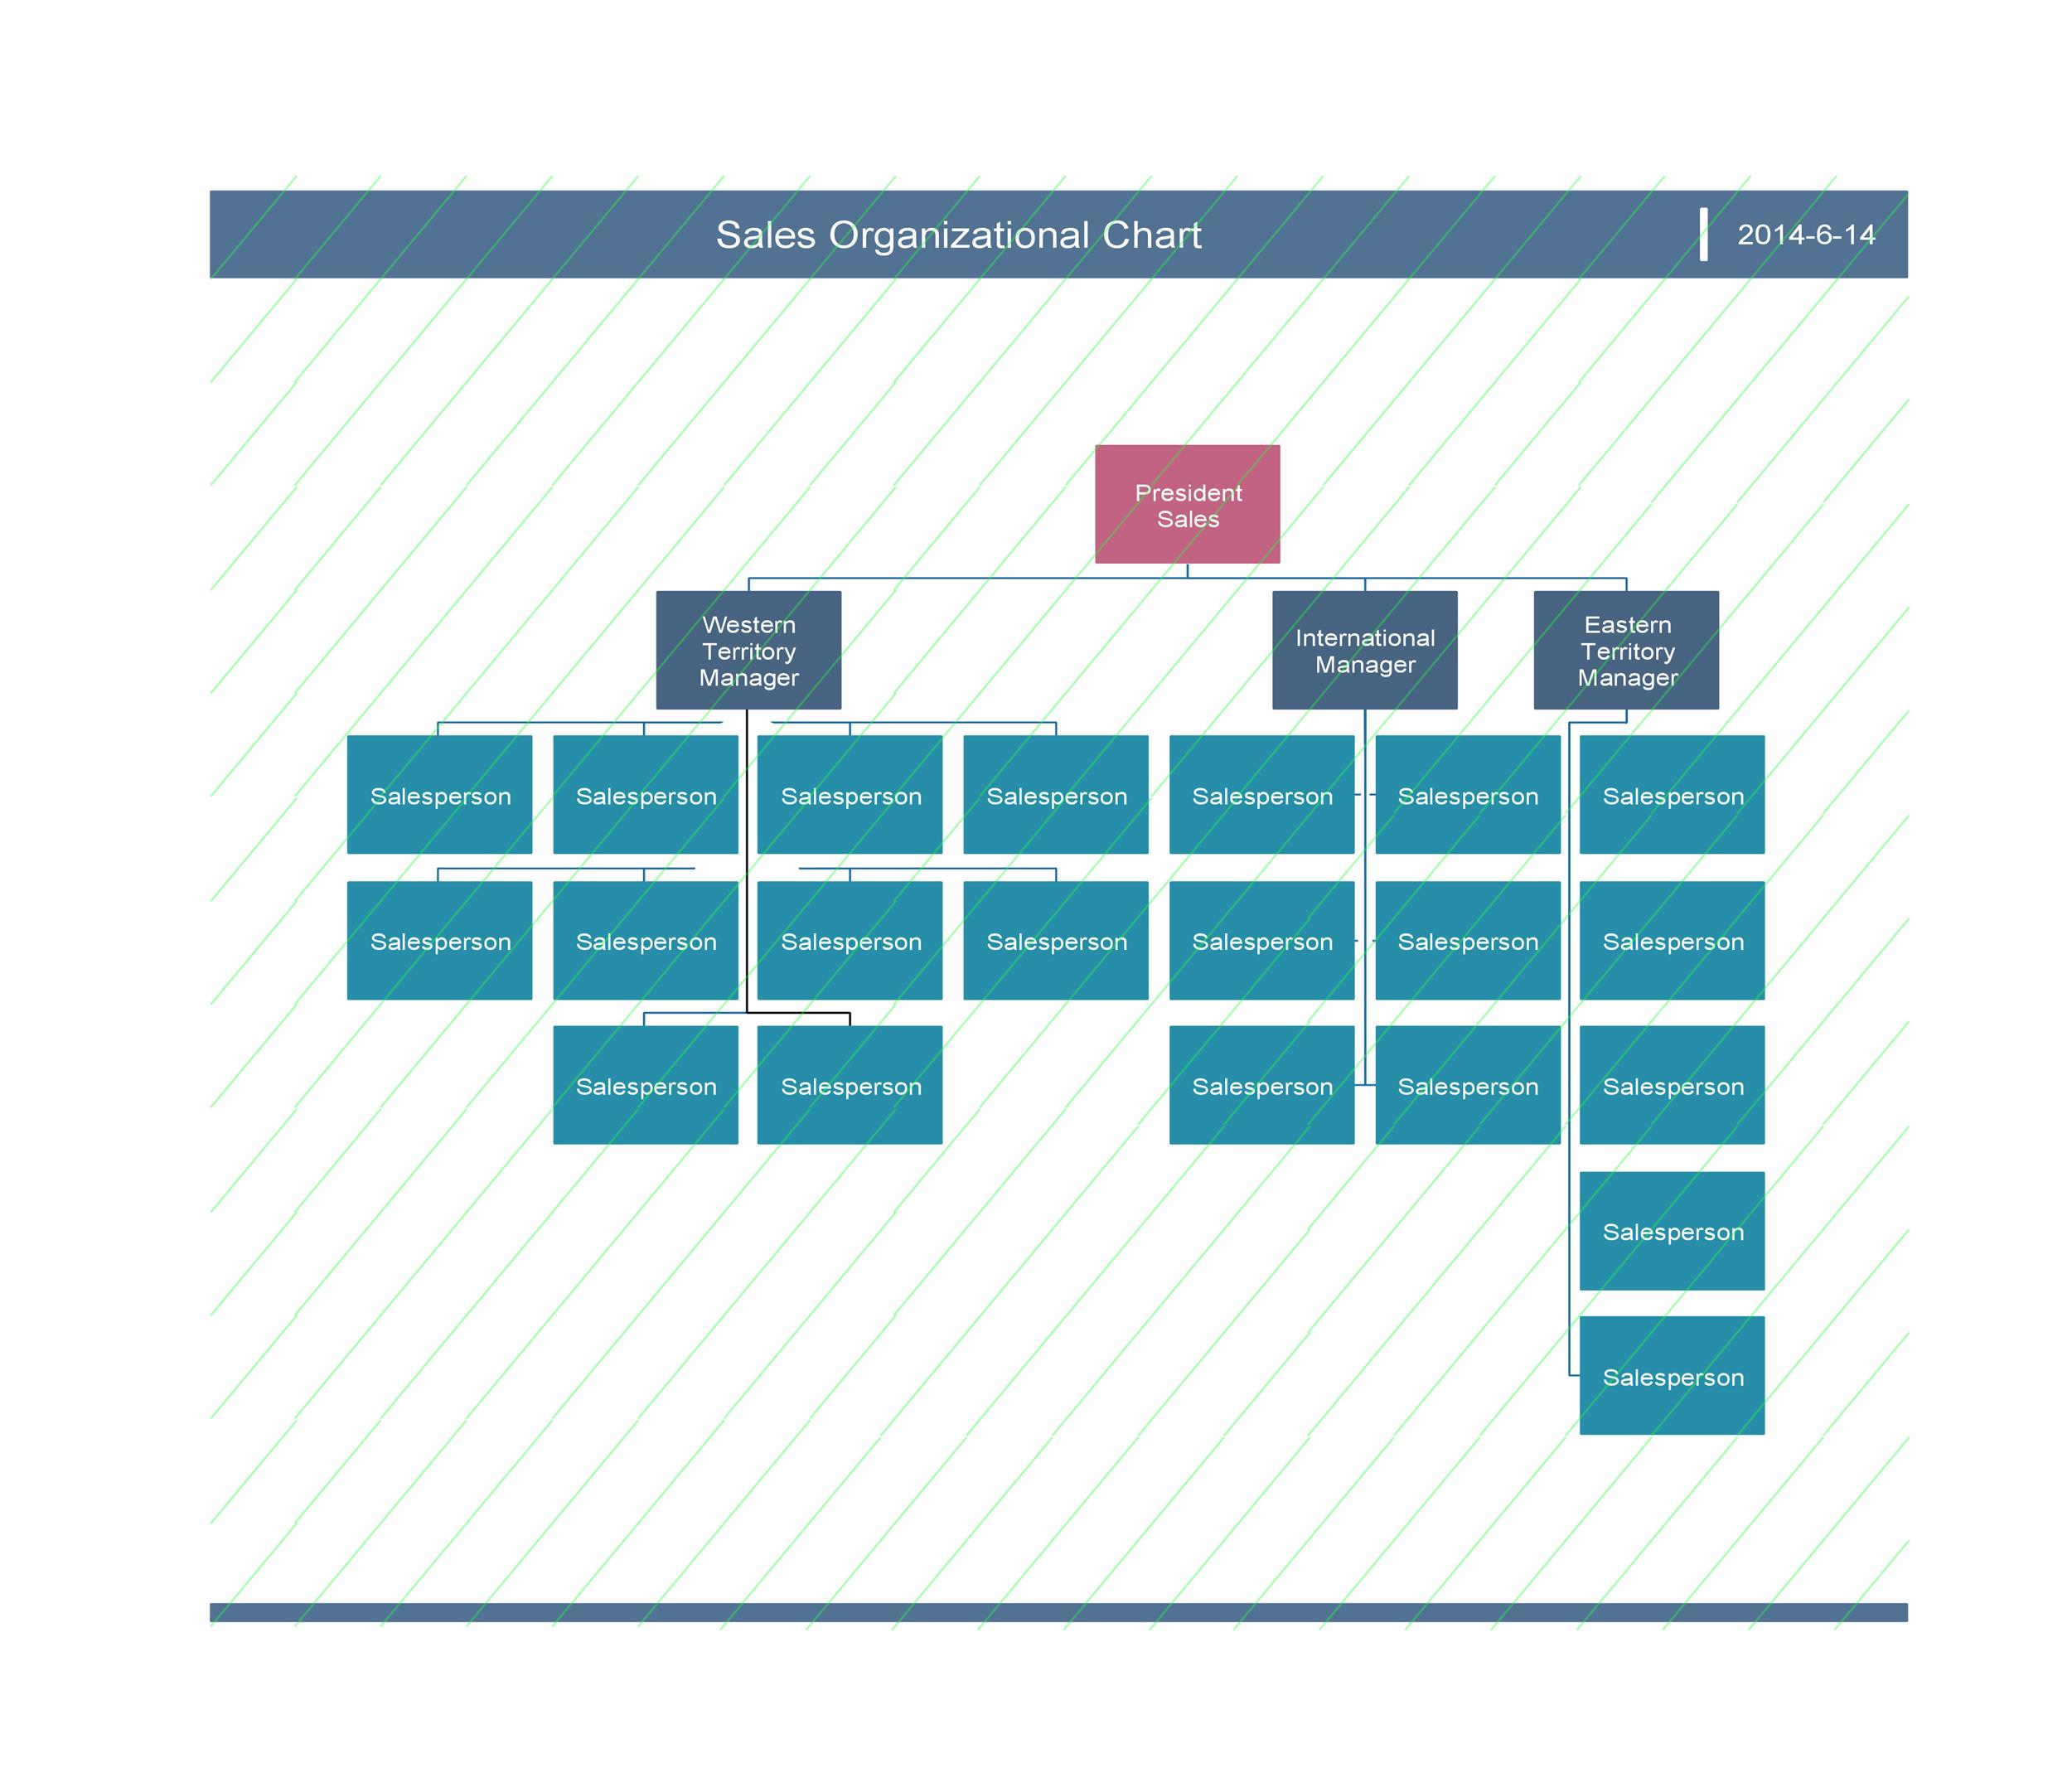 40 Organizational Chart Templates (Word, Excel, PowerPoint